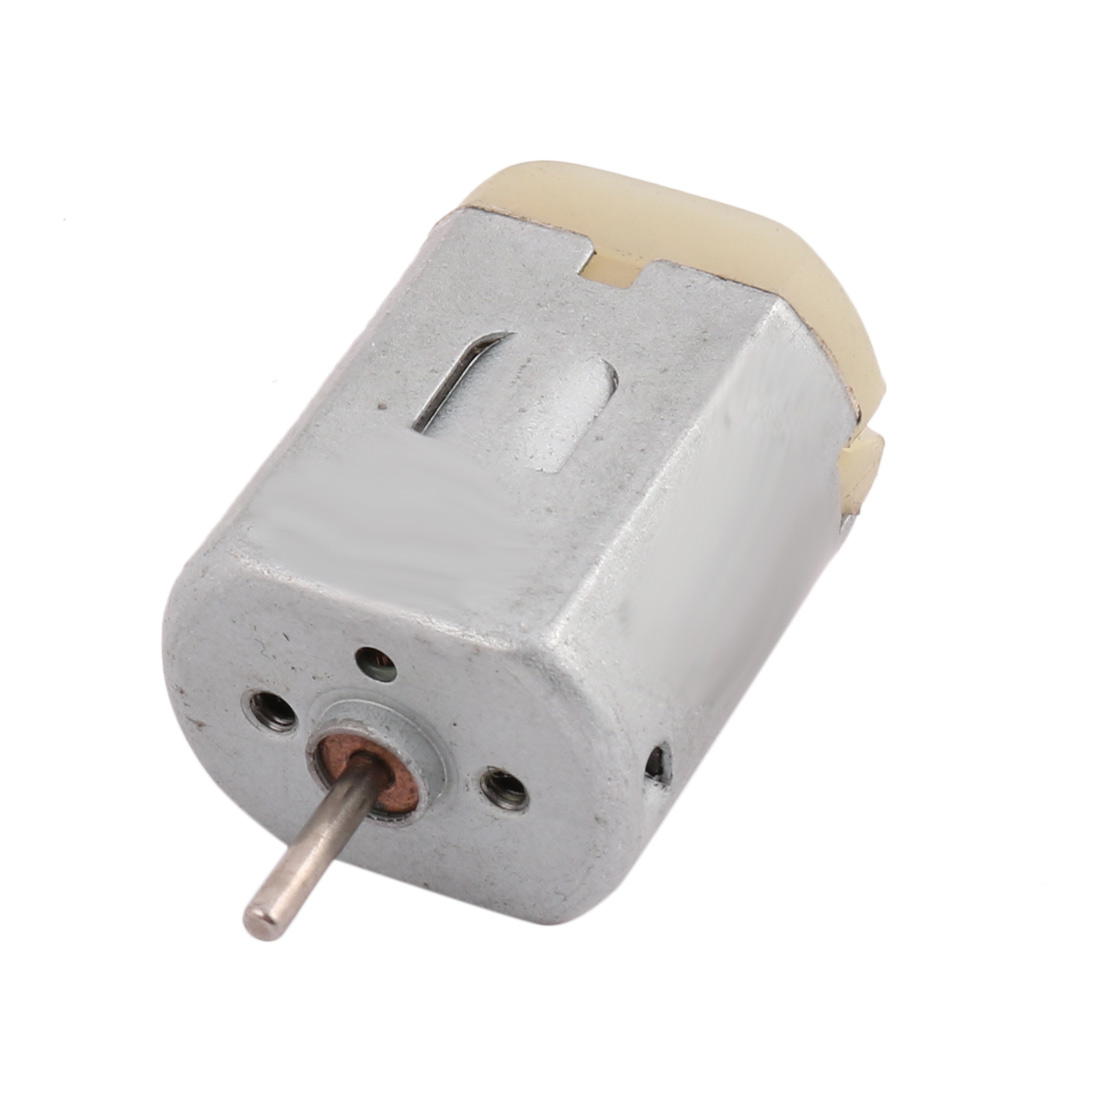 DC 5V 22000RPM Rotary Speed FF-280 Micro Vibration Motor for RC Model - image 2 of 2